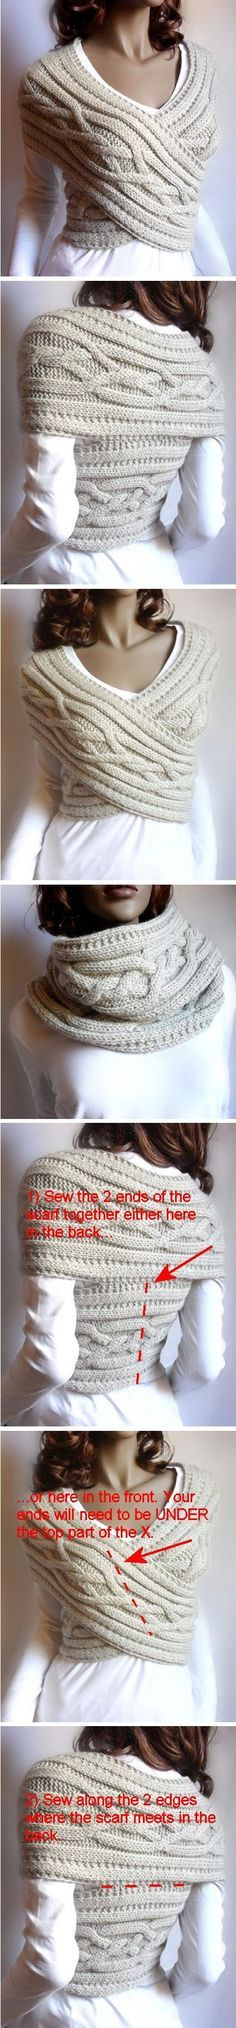 274 best tejido images on Pinterest | Knit crochet, Crochet patterns ...